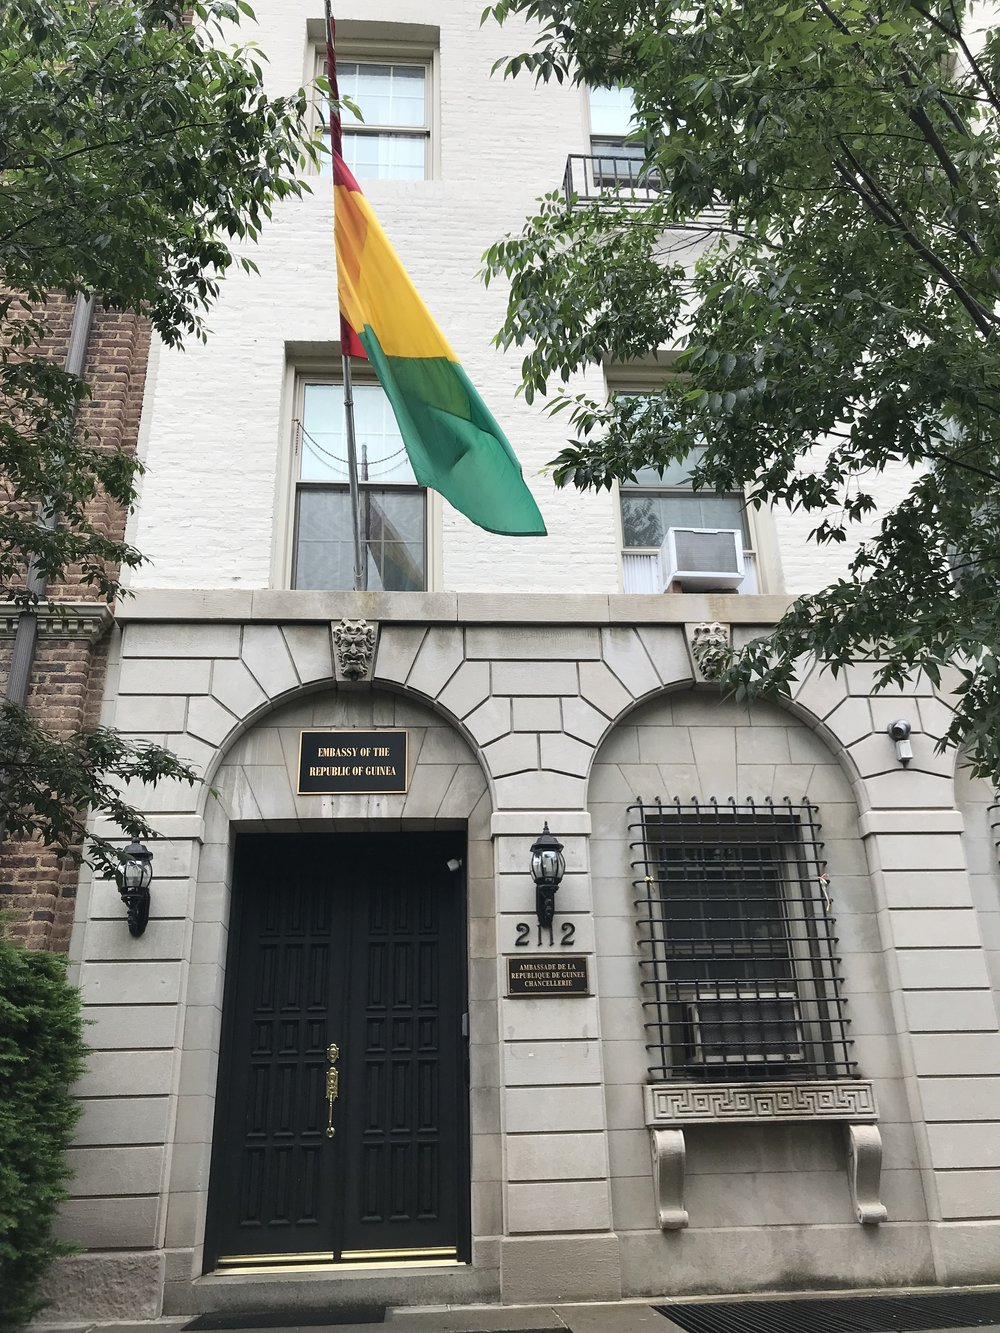 The Embassy of the Republic of Guinea.